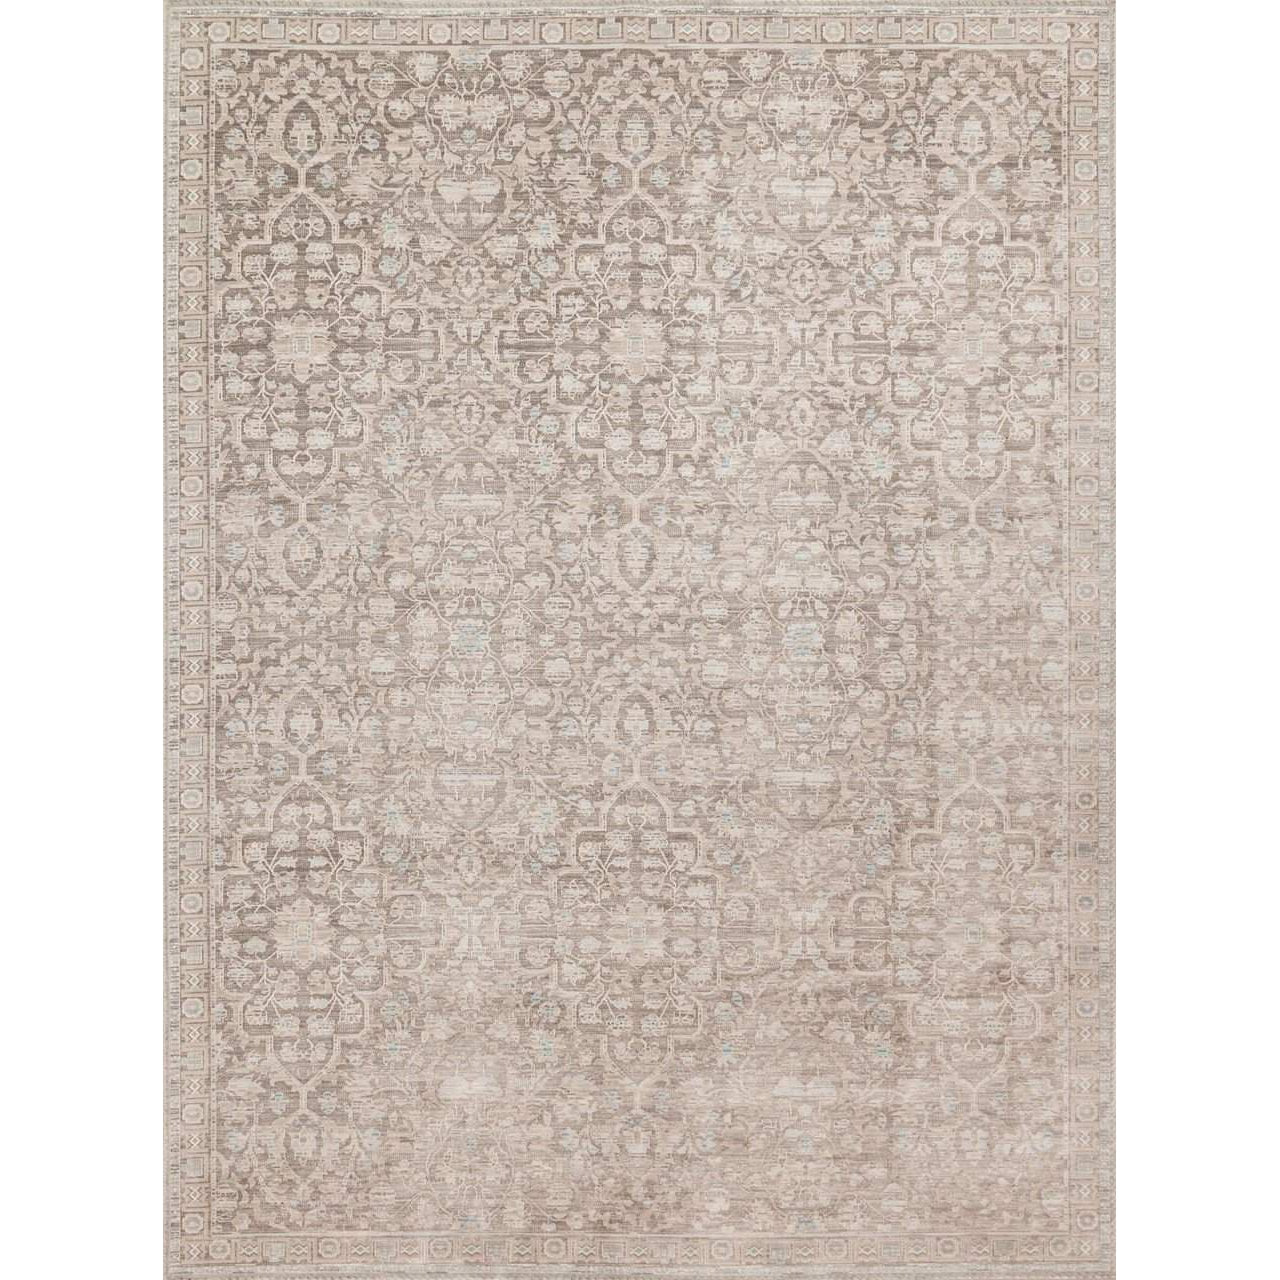 Joanna Gaines Magnolia Home Rug - Ella Rose Collection - Pewter / Pewter